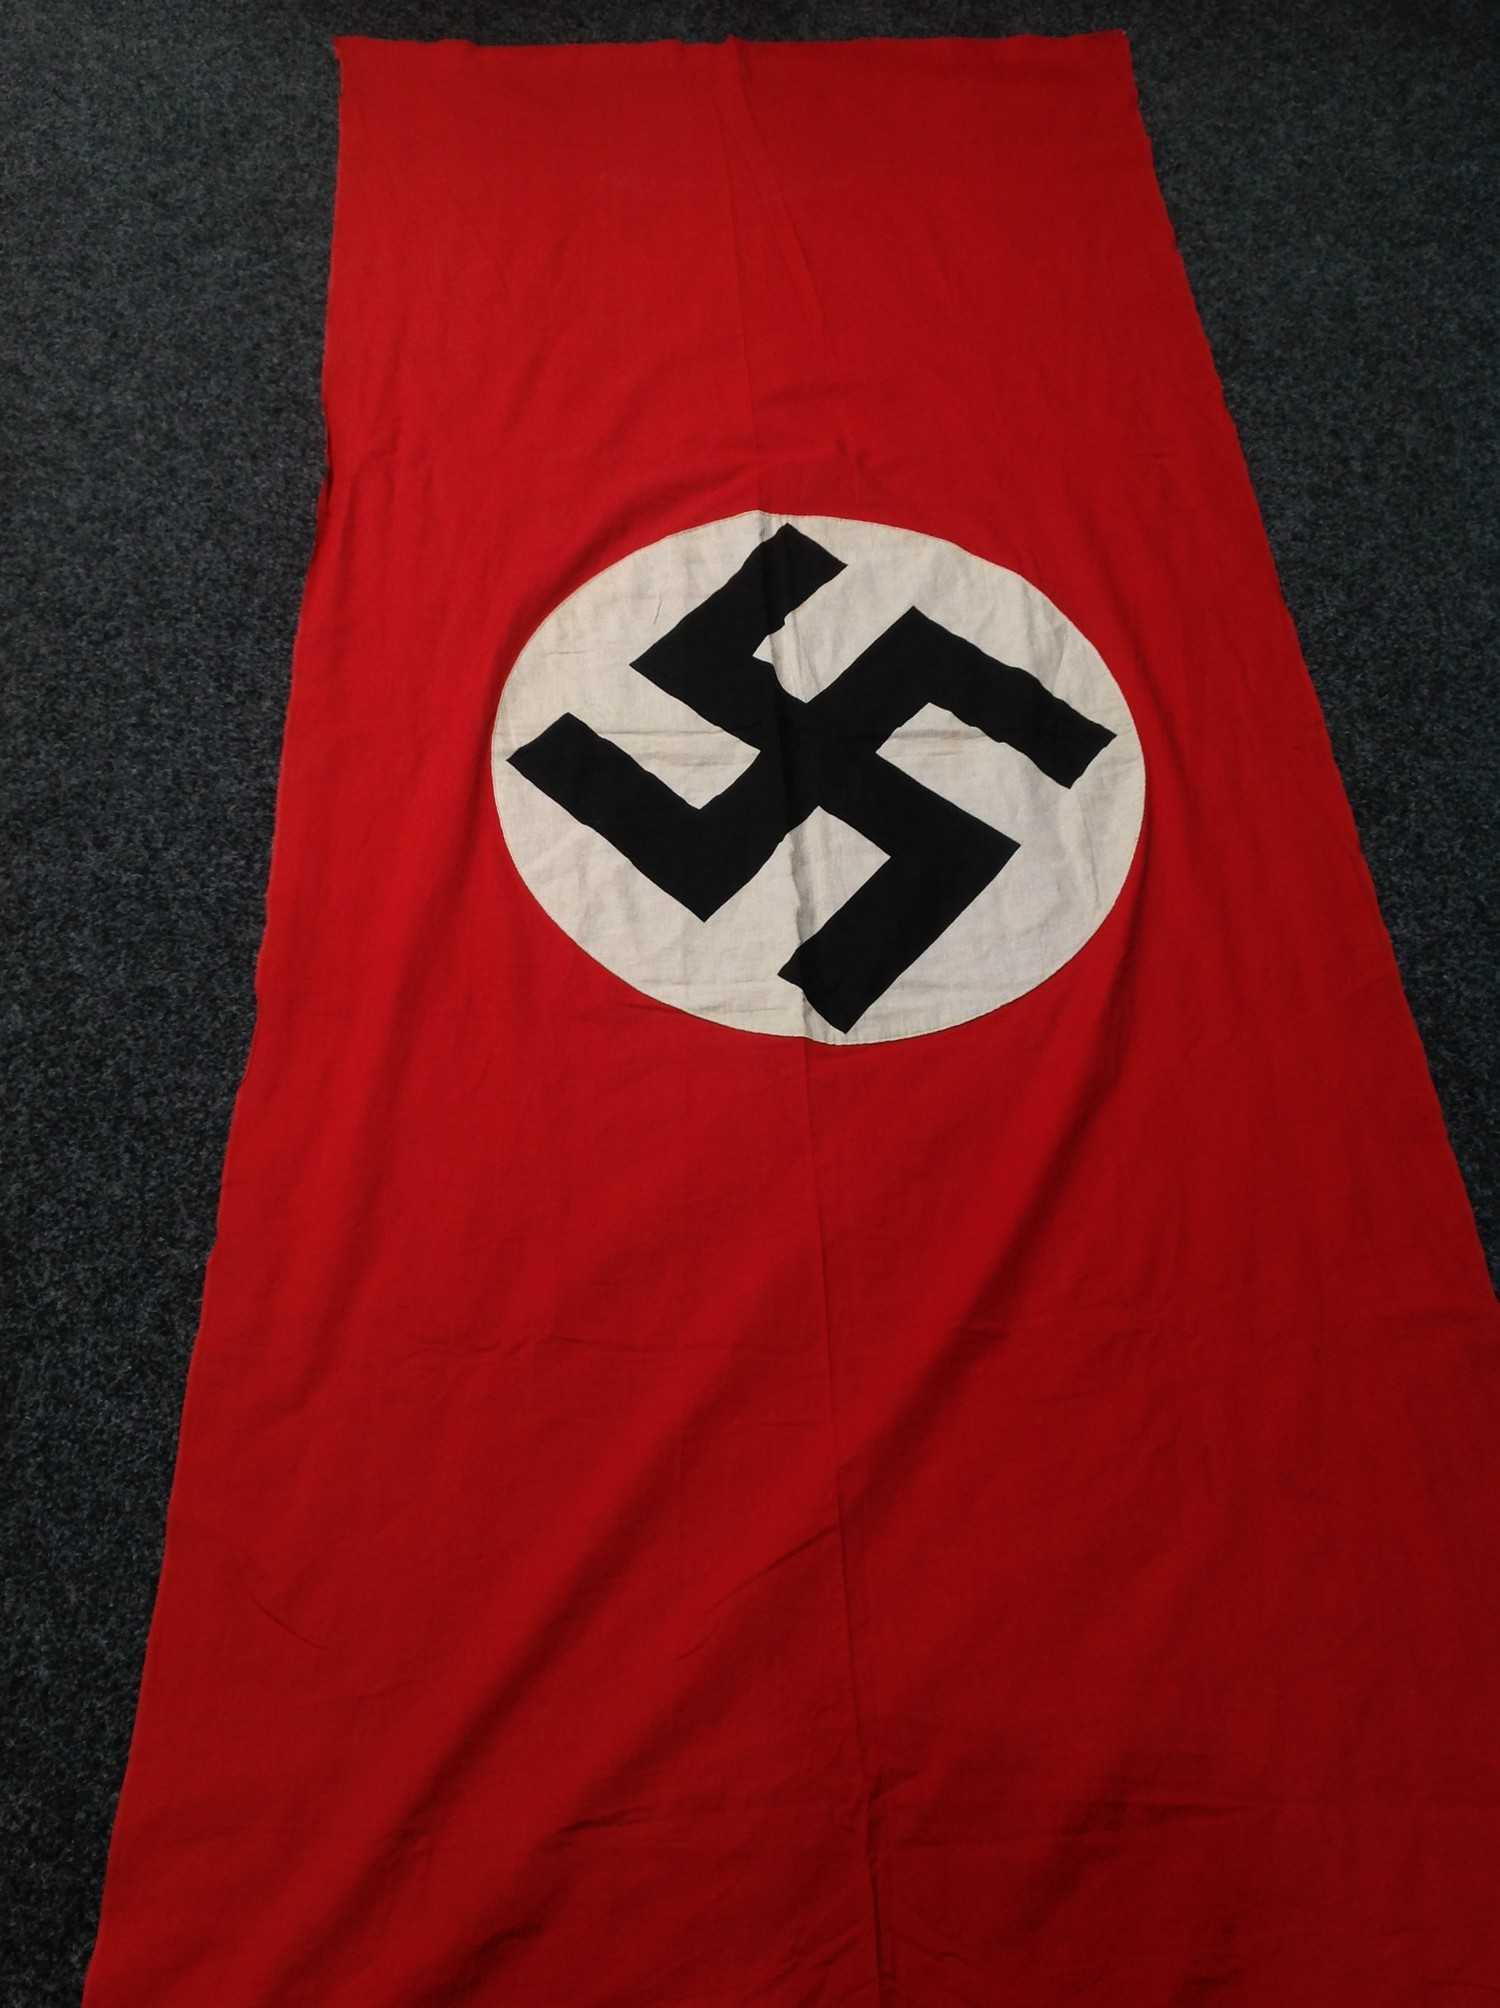 WW2 Third Reich NSDAP Banner, size 280cm x 116cm. Printed Swastika on a separate white roundal. No